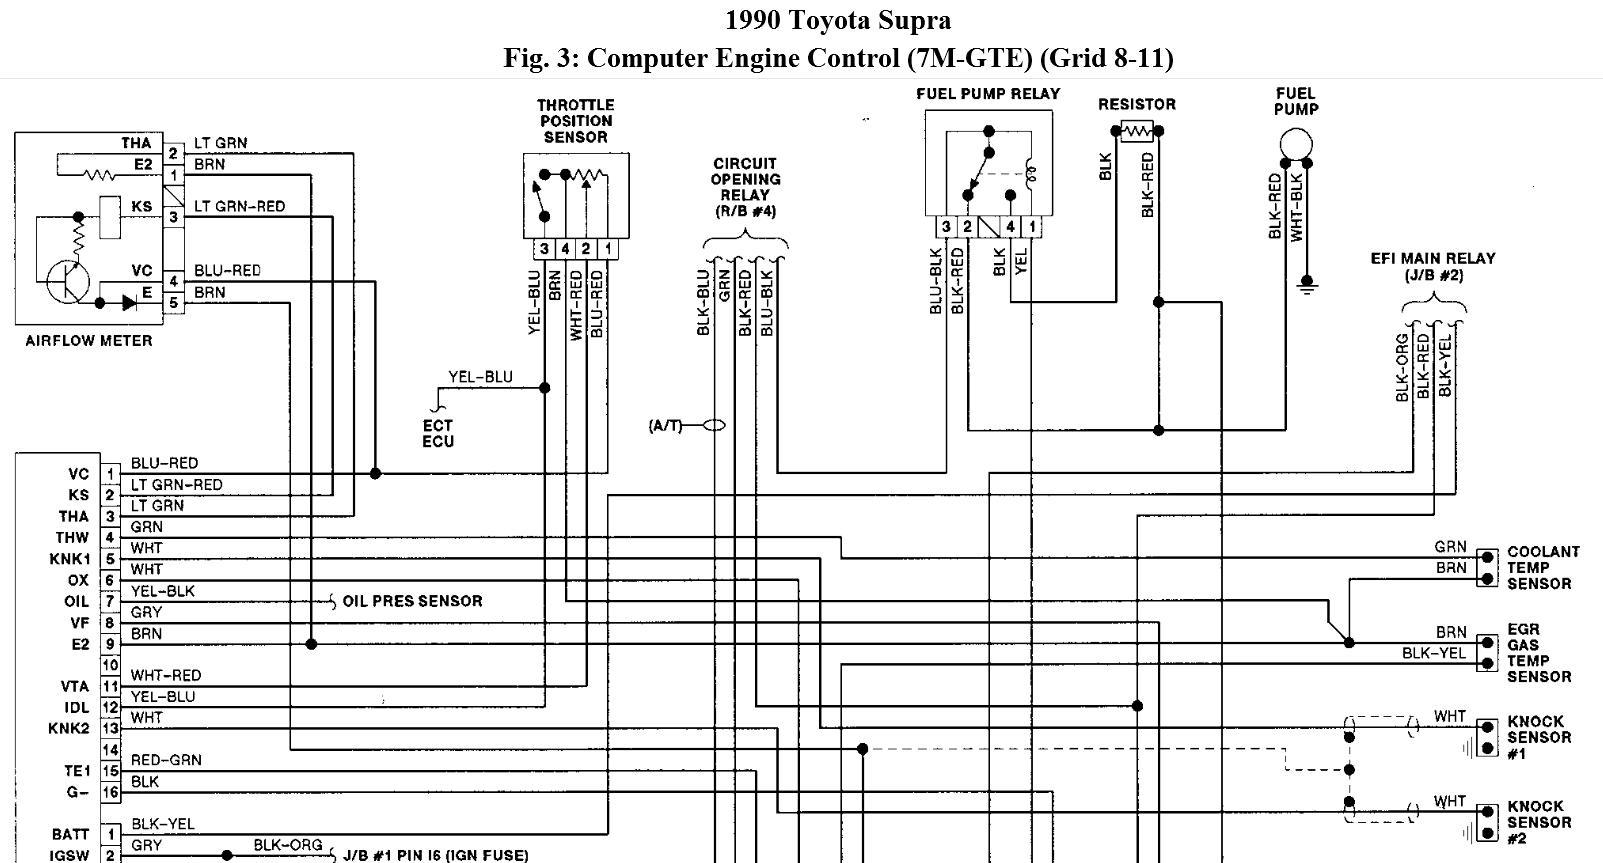 Wiring Need Wiring Schematic For A 7m Gte Engine In A